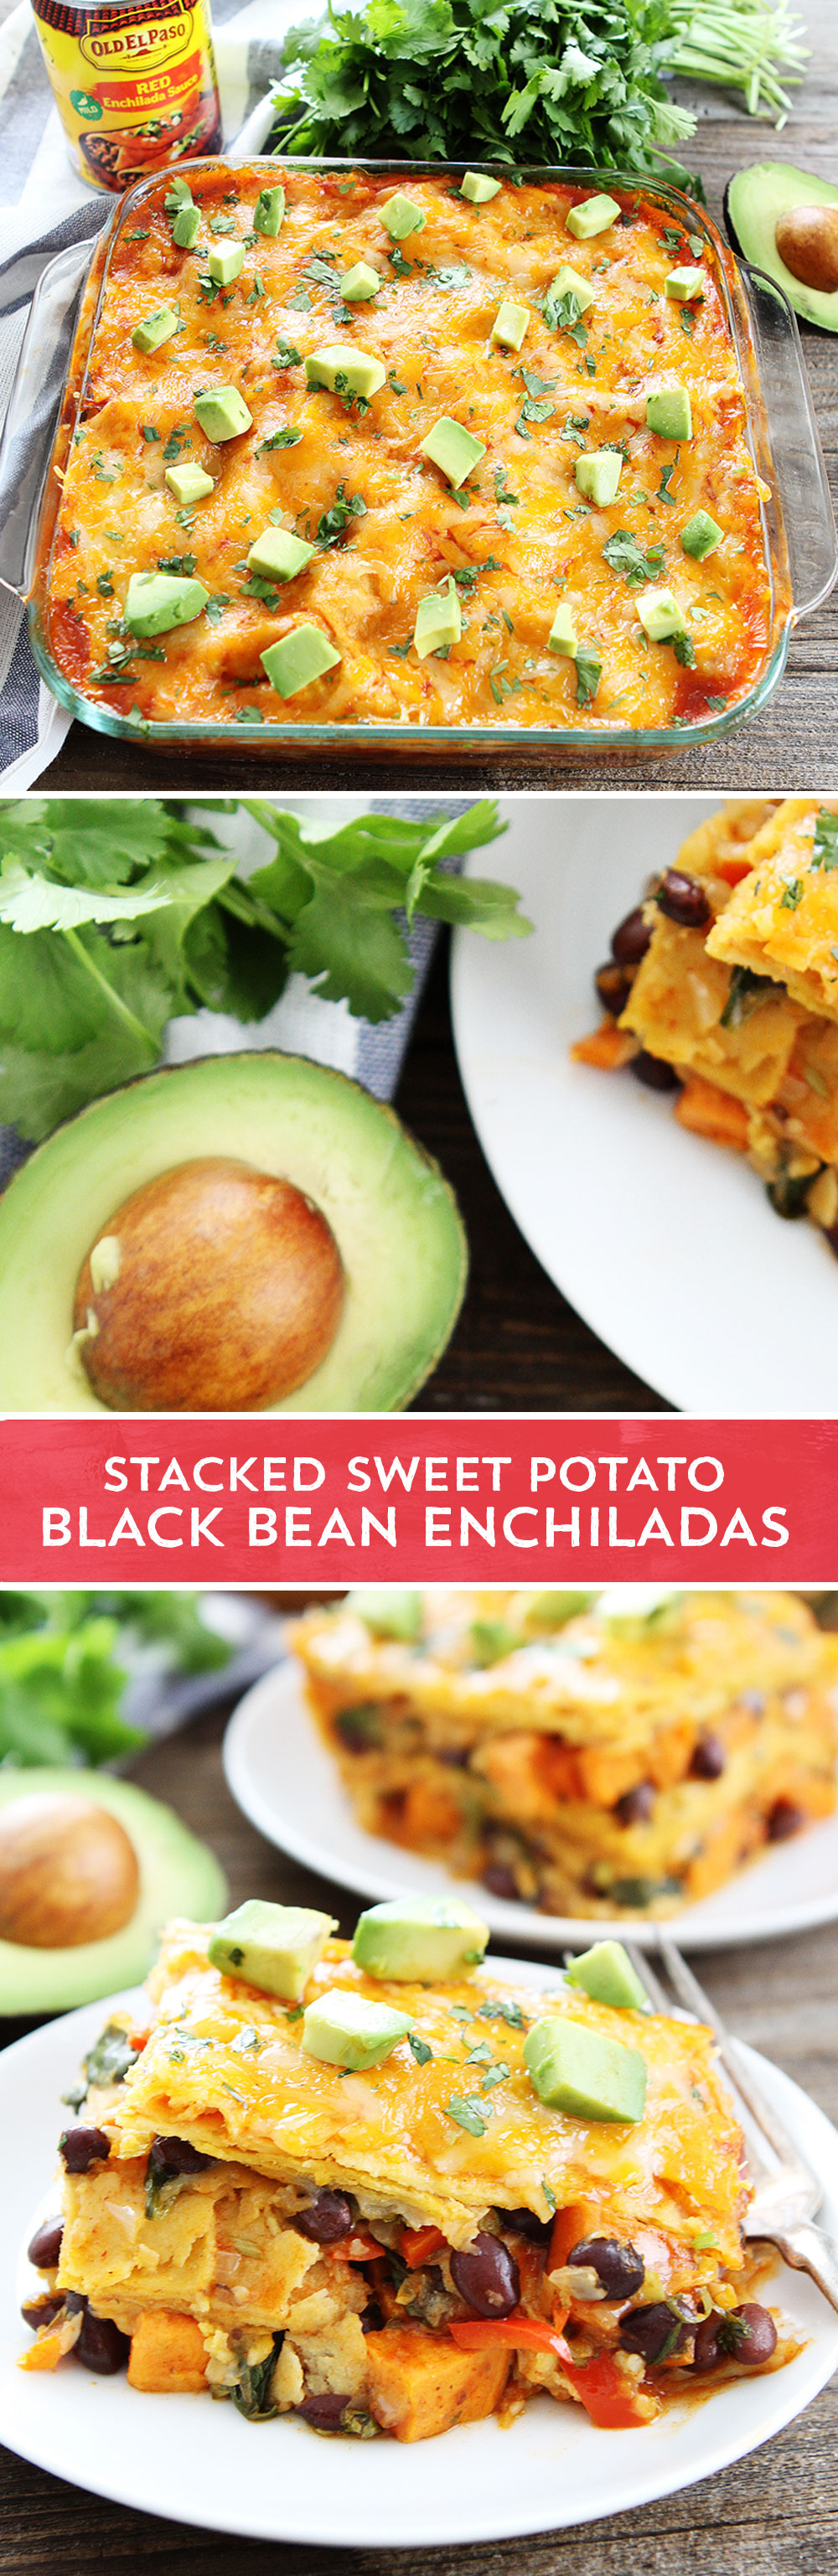 Want a new twist on your favorite enchiladas? Try these